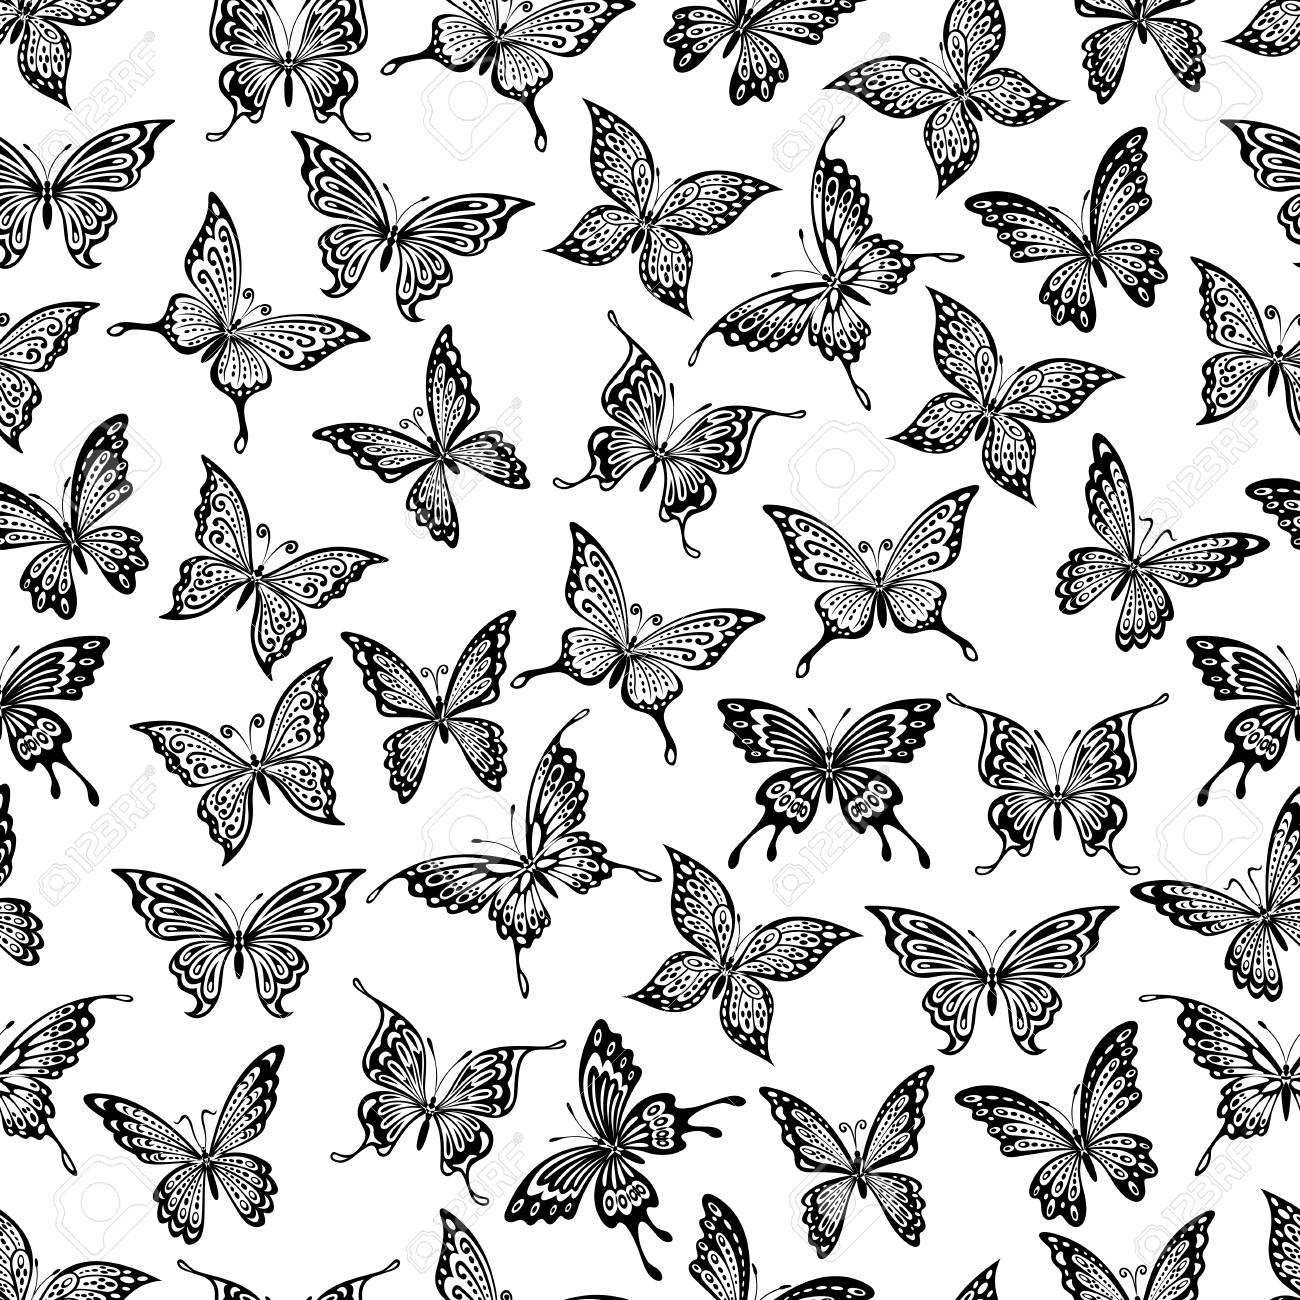 seamless pattern with black flying butterflies on white background for wallpaper or textile design